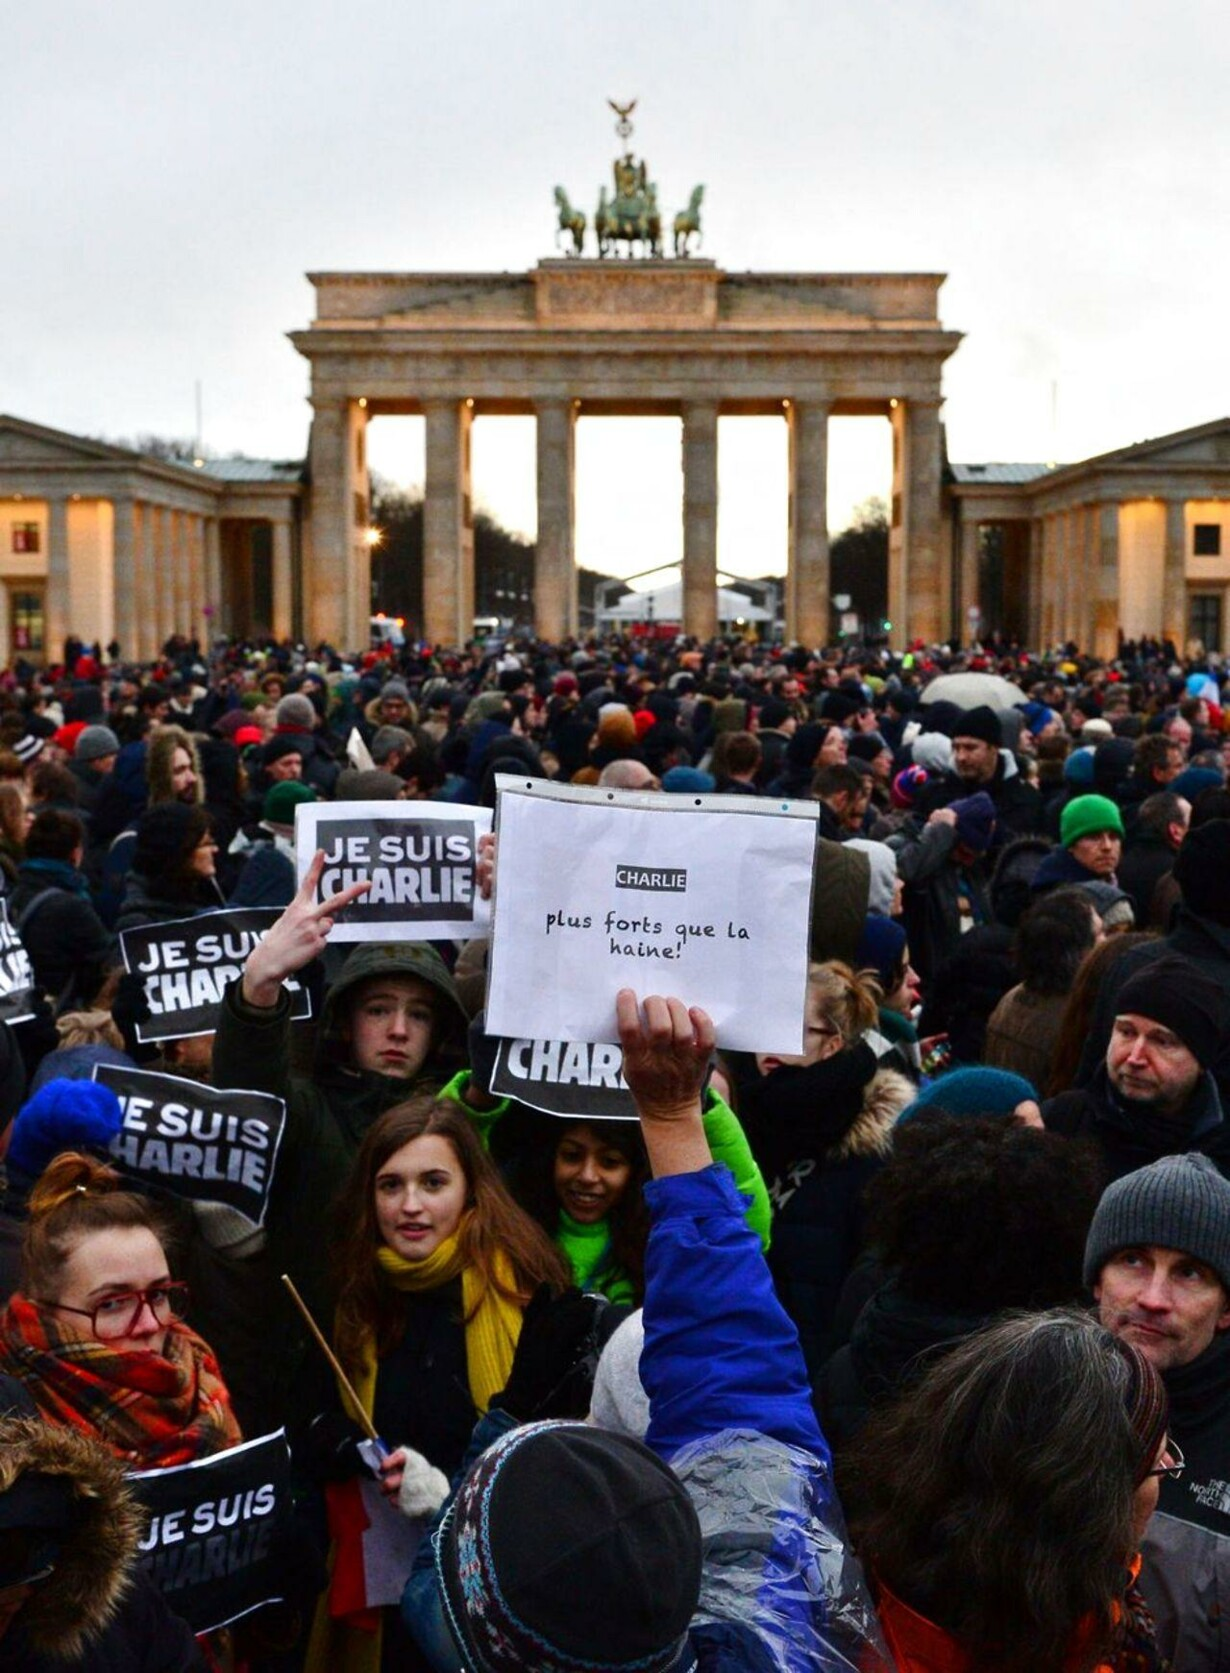 GERMANY-FRANCE-ATTACKS-CHARLIE-HEBDO-RALLY